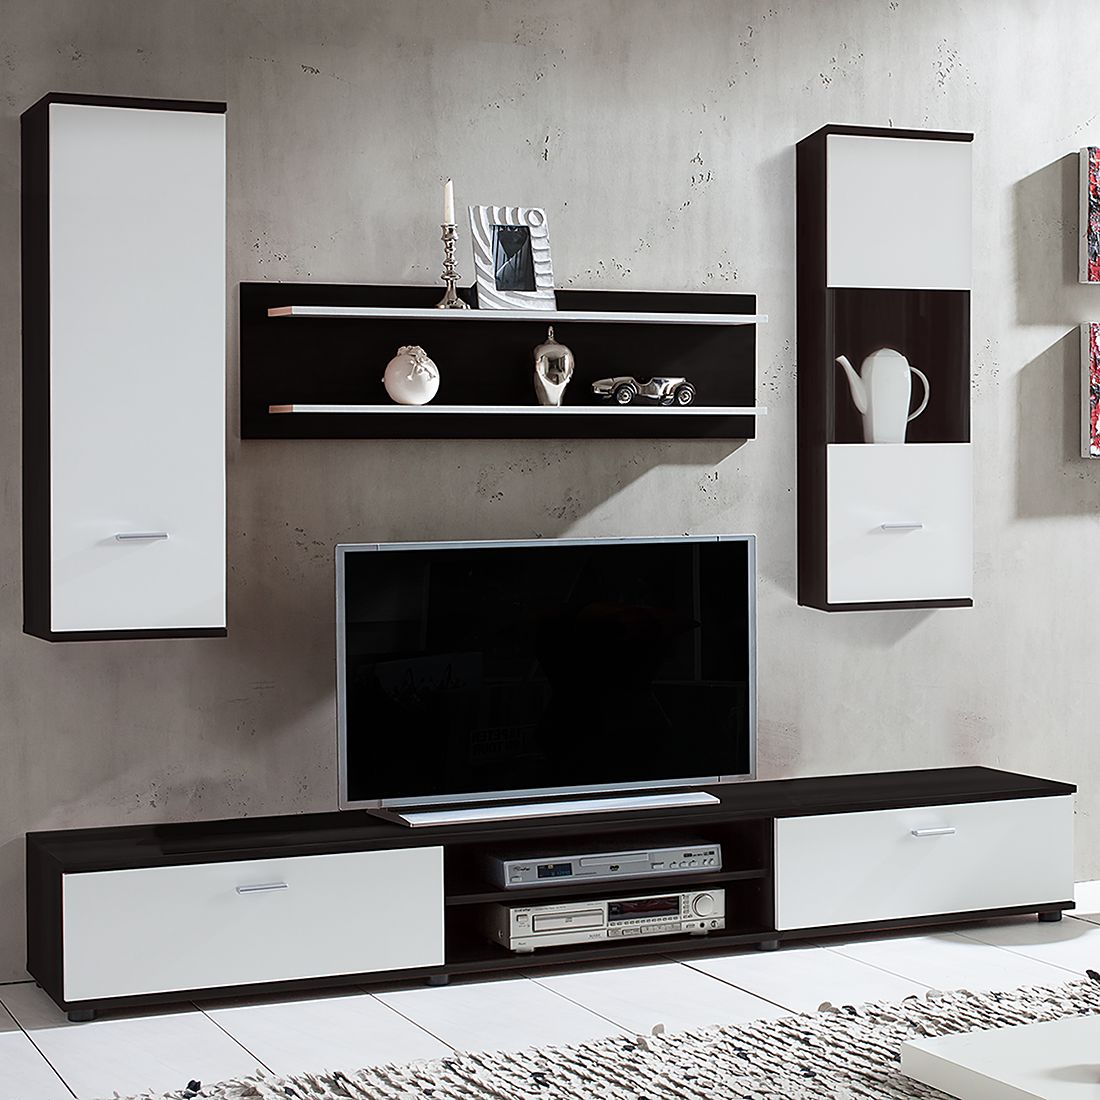 17 sparen wohnwand grinda 4 tlg nur 149 99 cherry m bel home24. Black Bedroom Furniture Sets. Home Design Ideas